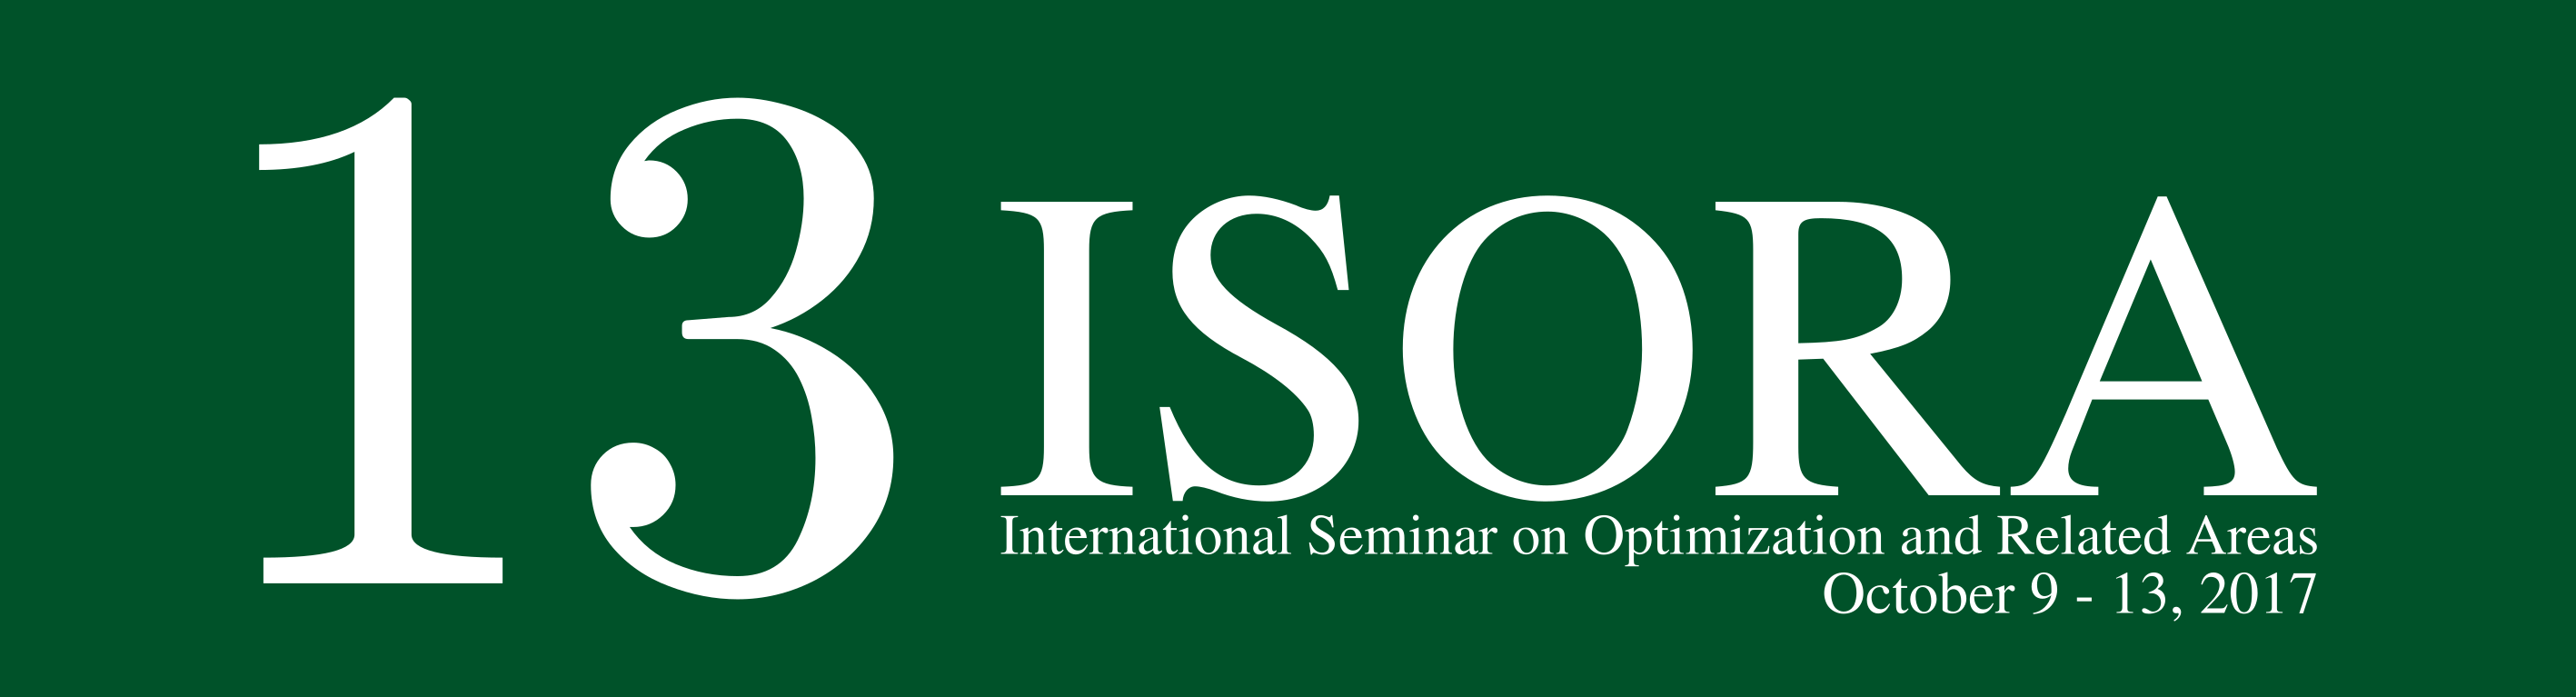 ISORA 2017: International Seminar on Optimization and Related Areas